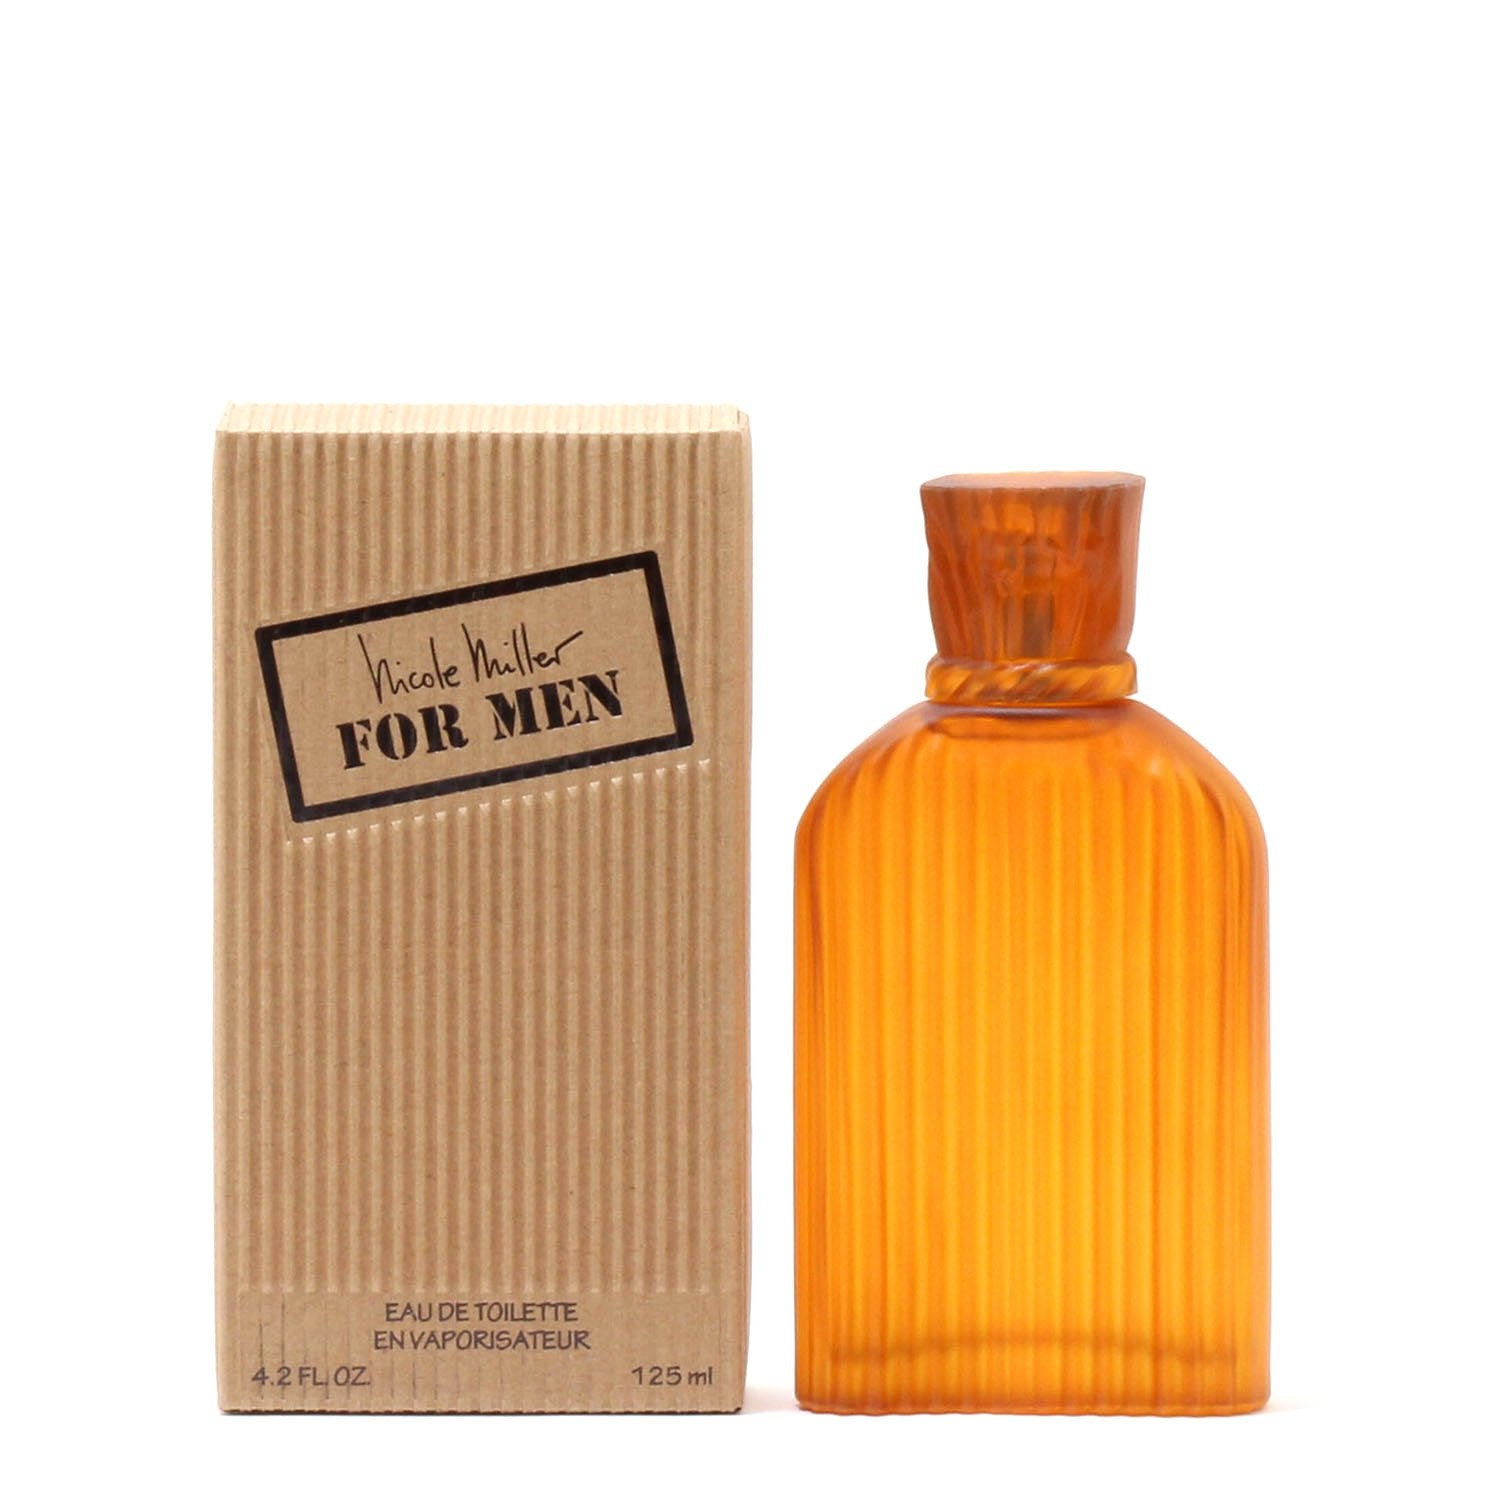 Cologne - NICOLE MILLER FOR MEN - EAU DE TOILETTE SPRAY, 4.2 OZ